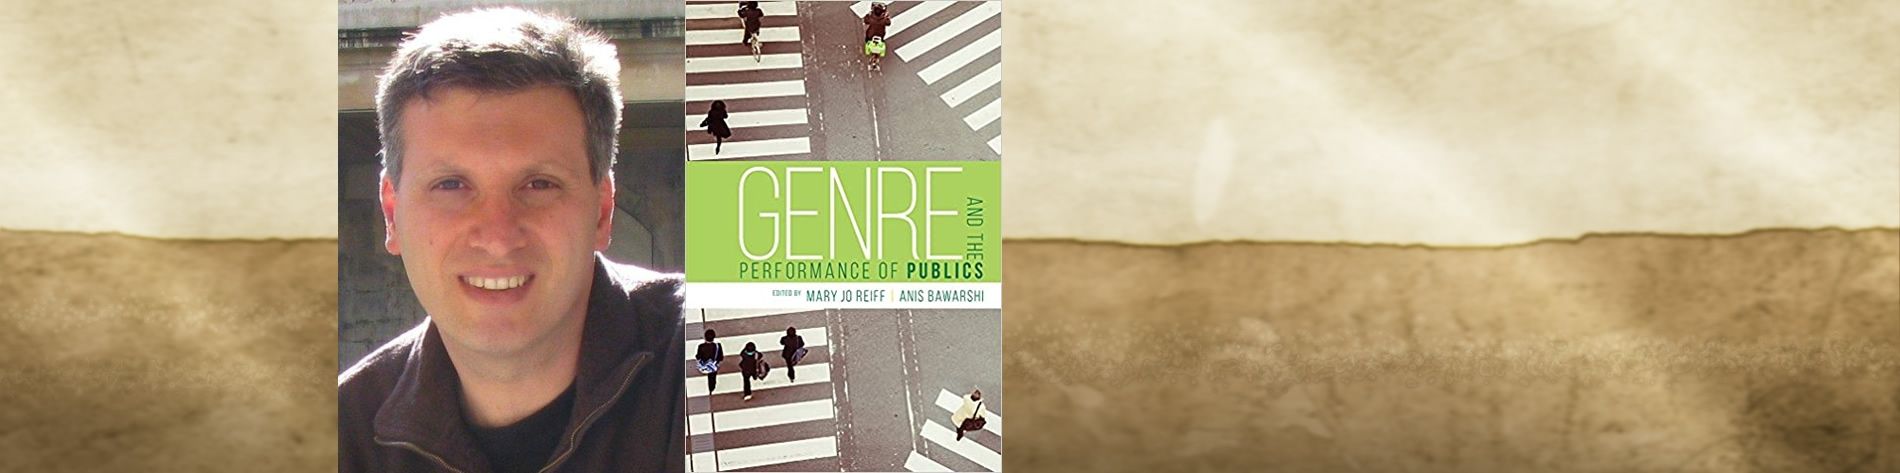 Anis Bawarshi and book cover of Genre and the Performance of Publics